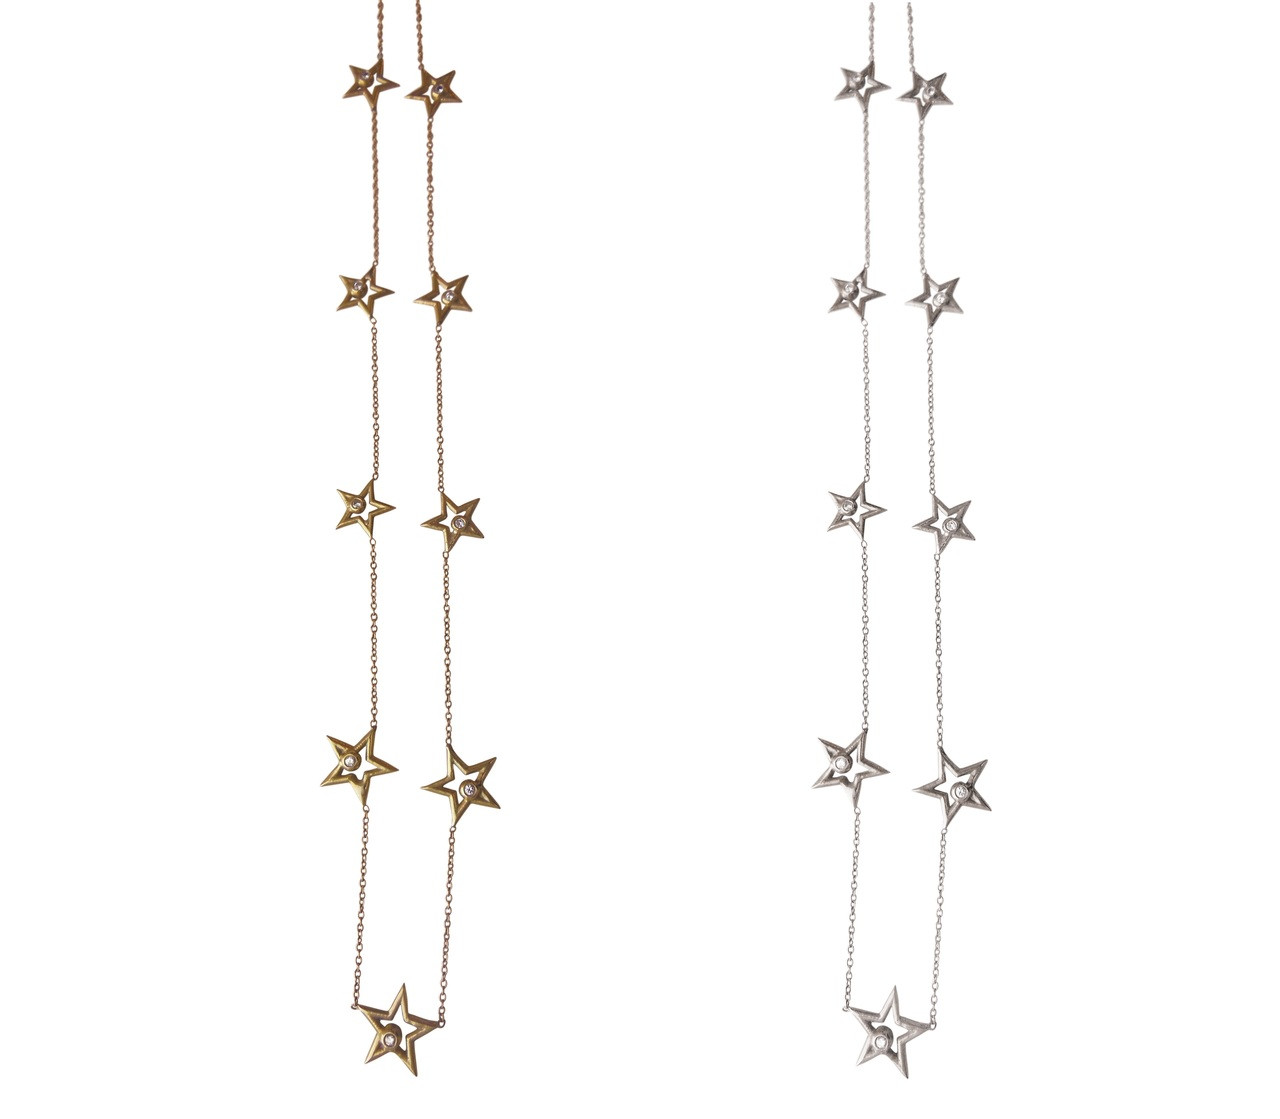 Stars-Chain of Stars Necklace-Sterling with plate options